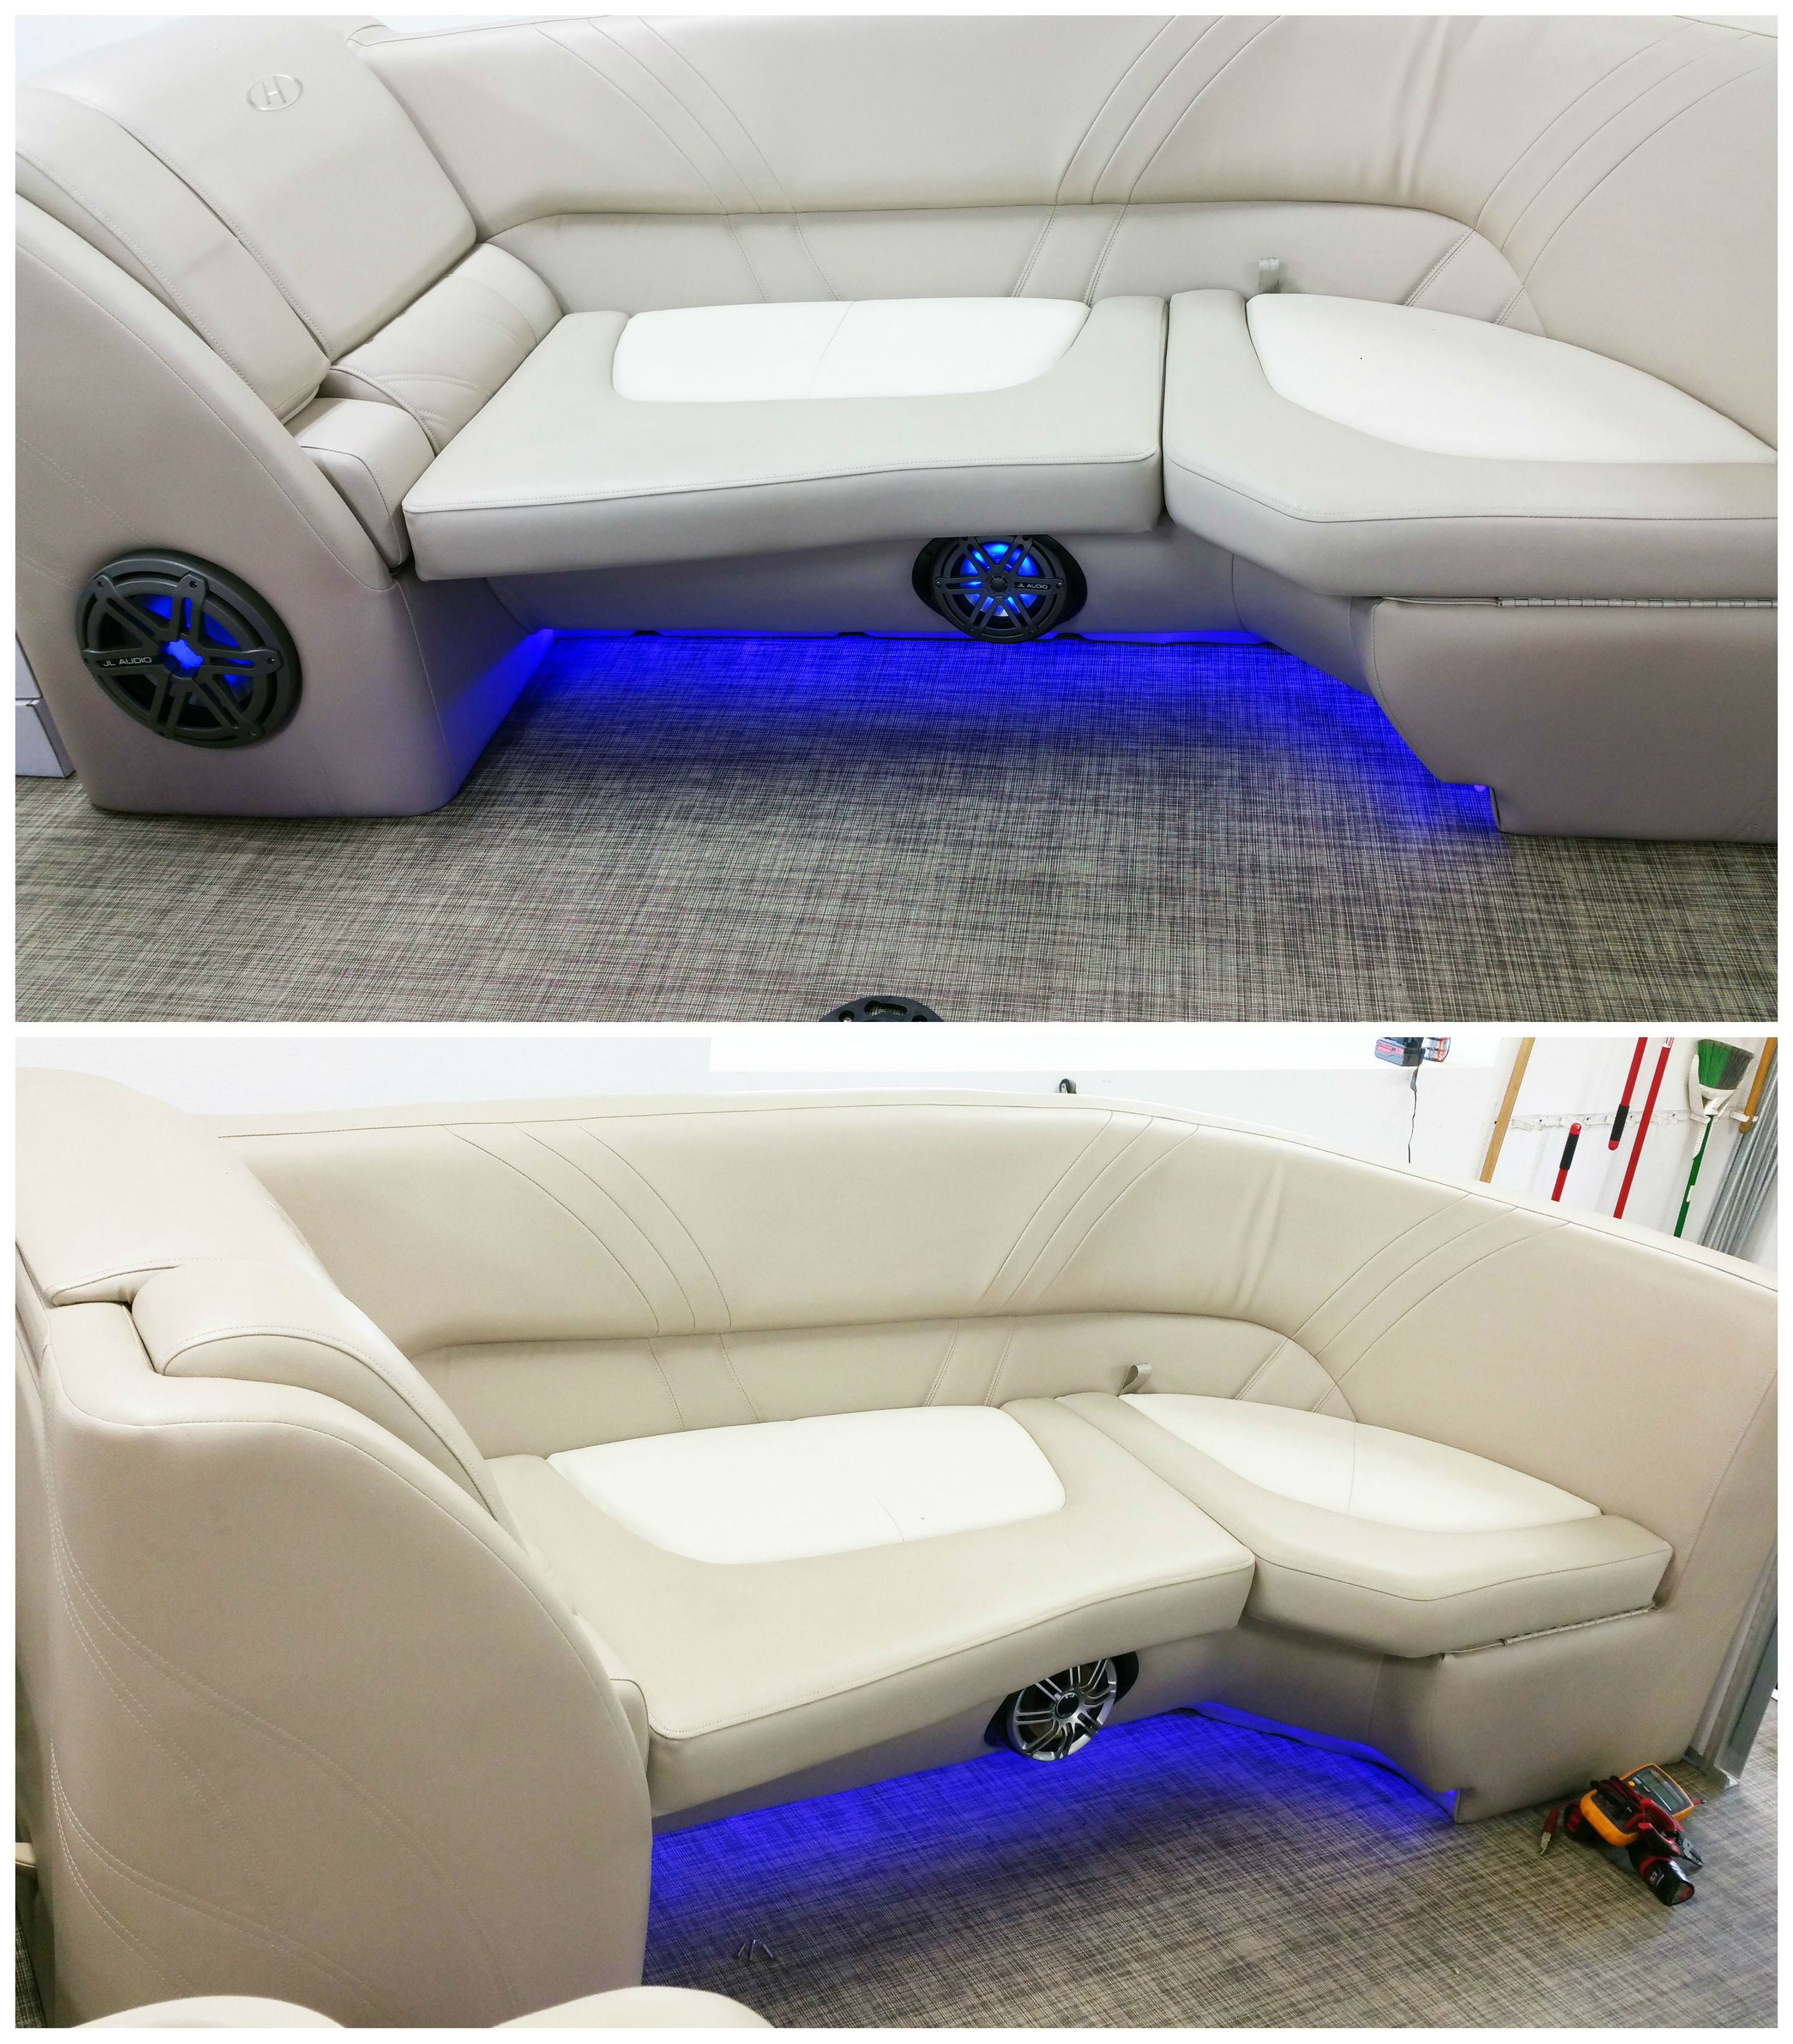 Front Zone: Installed the MX650 Speakers with LED Lighting from JL Audio & the MXIB3 Subwoofer was added.